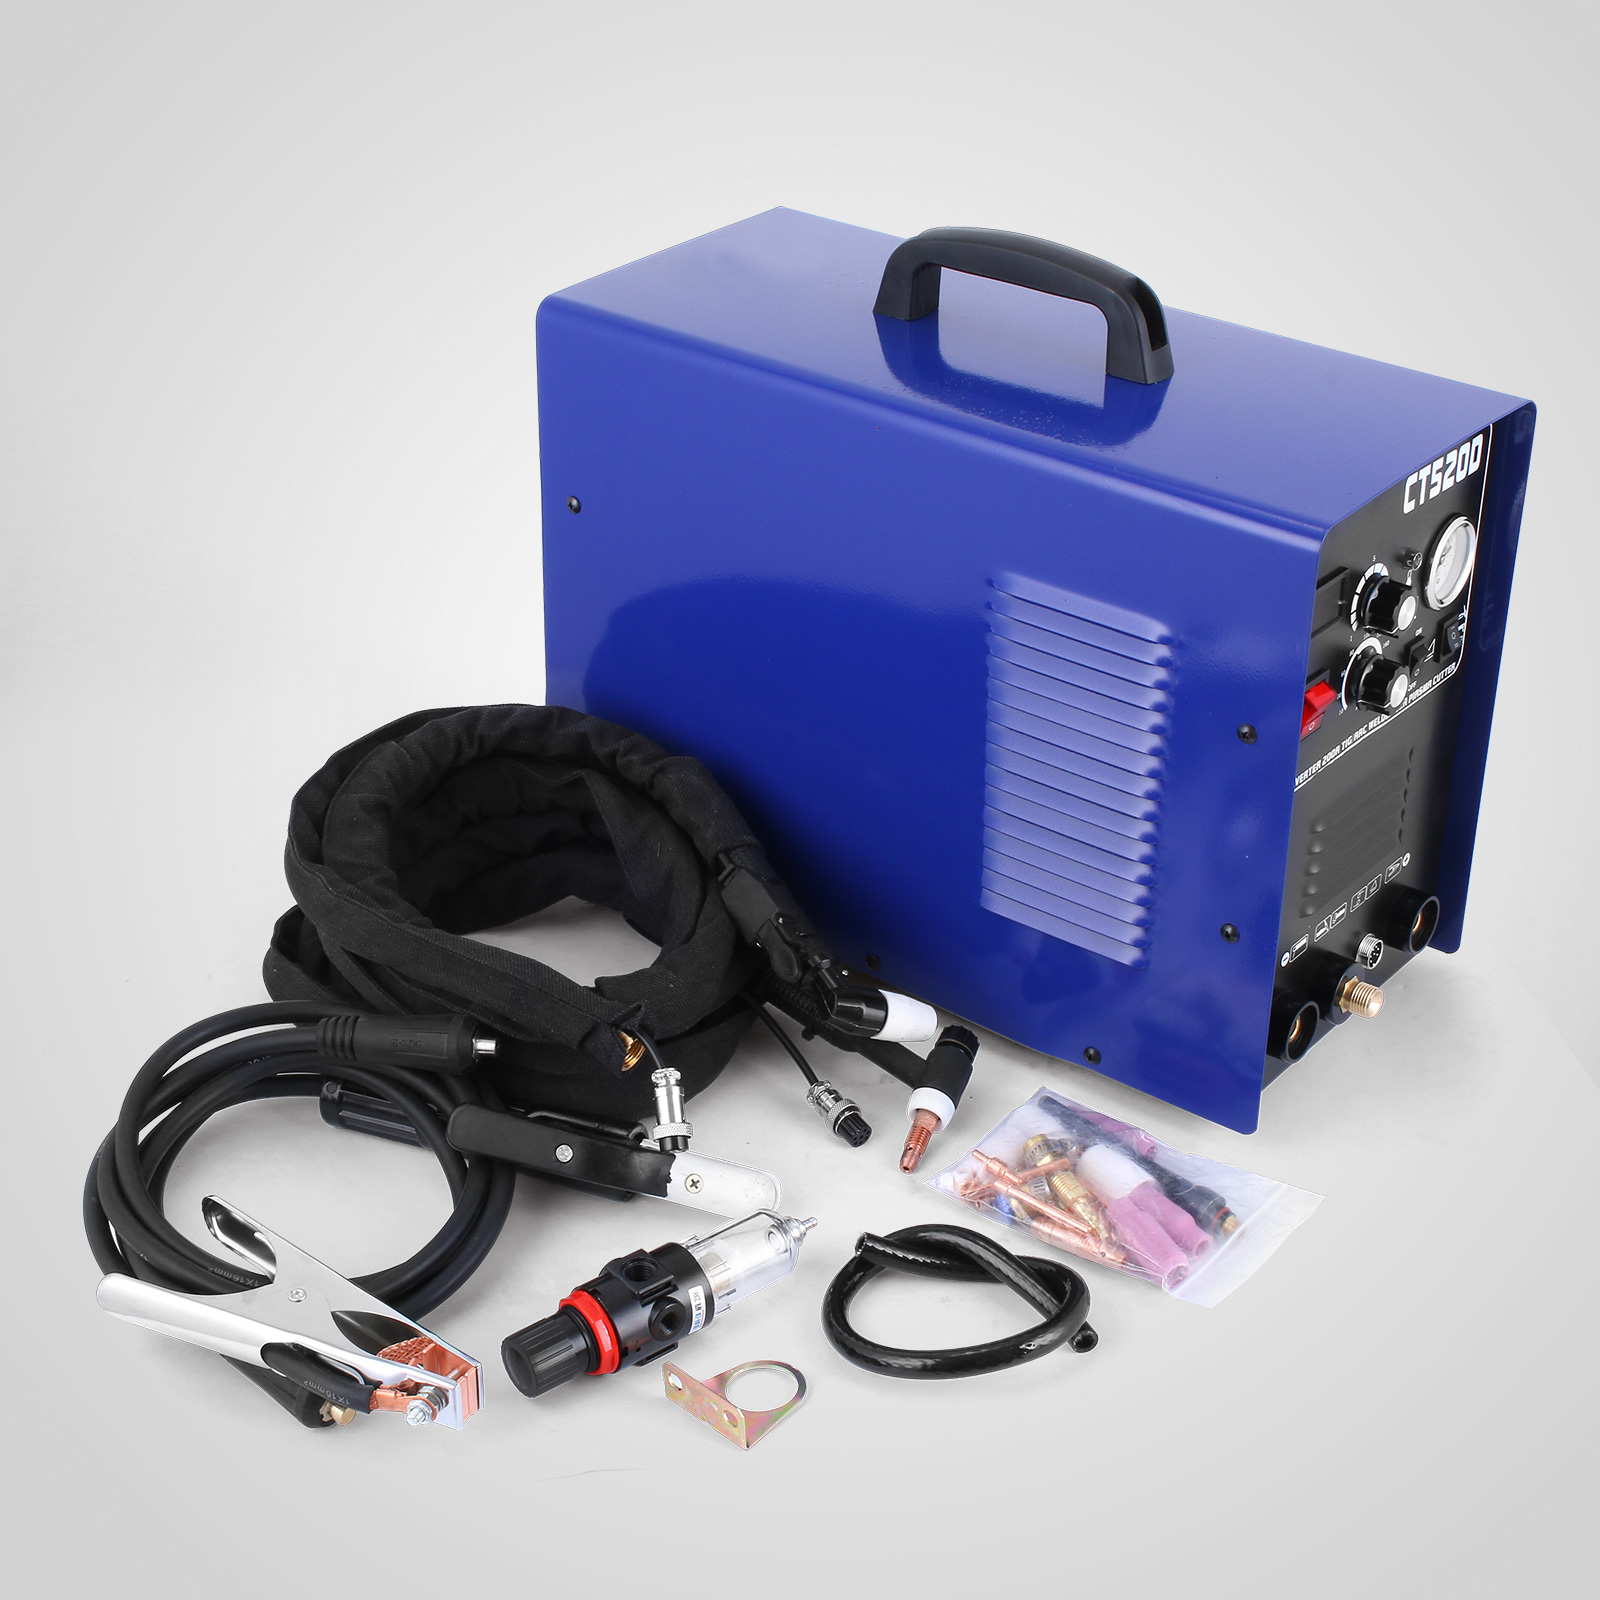 CT520D Plasma Cutter Tig Stick Welder 3 in 1 Combo Welding Machine, 50Amp Air Plasma Cutter, 200A TIG/ Stick Welder